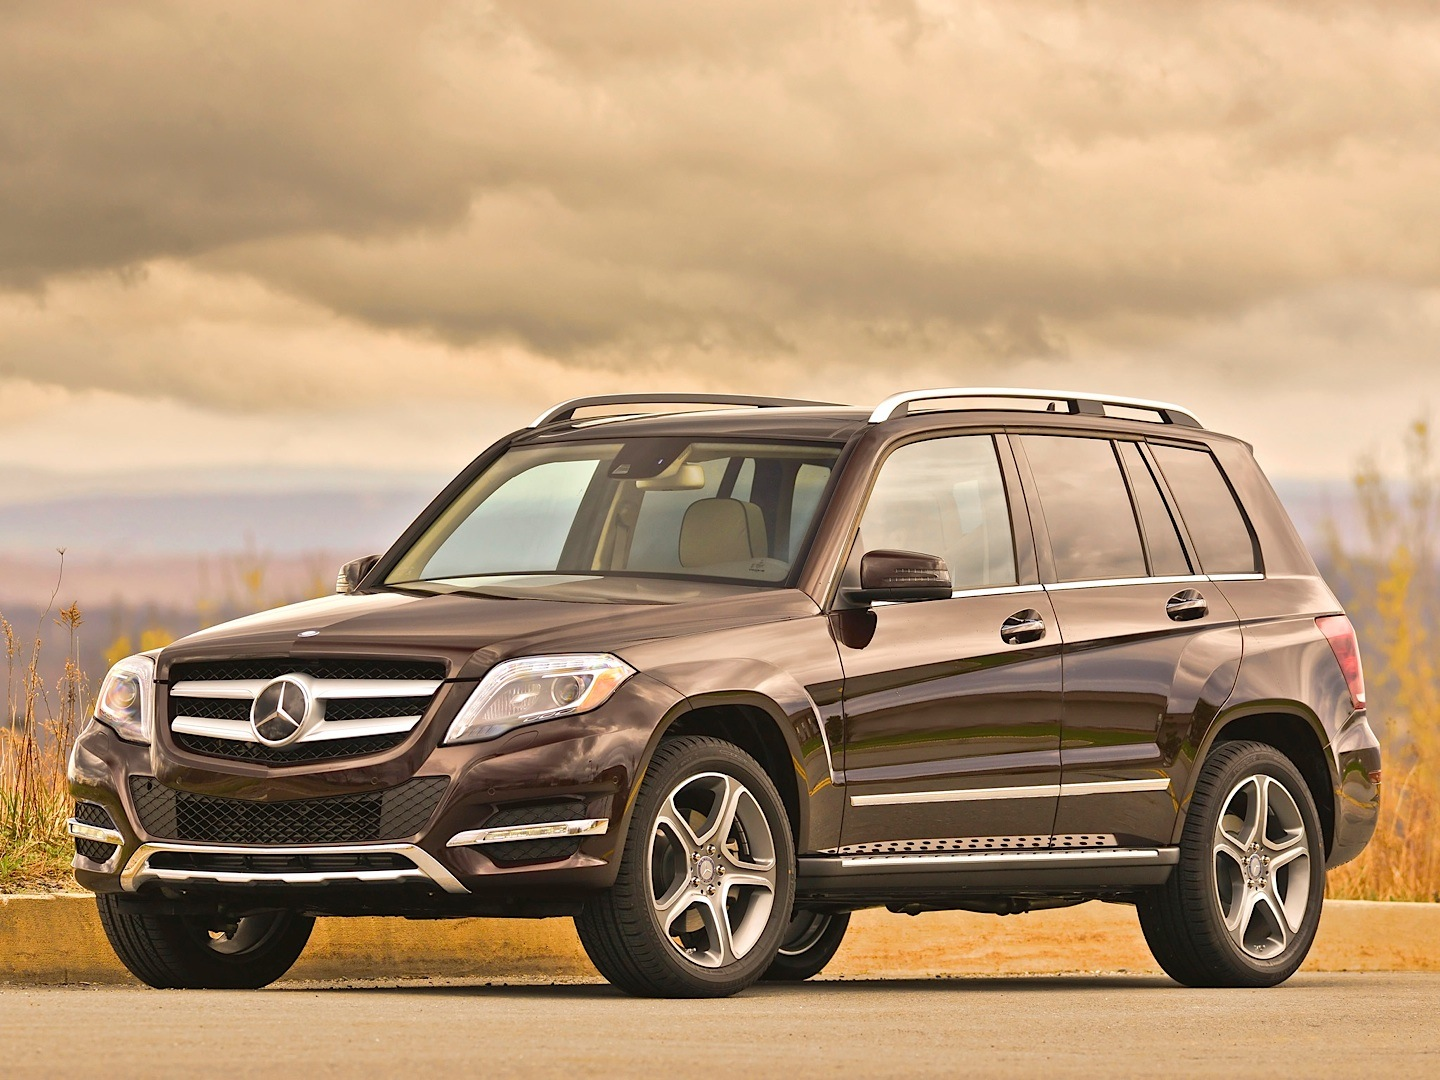 Mercedes Benz Glk 250 Bluetec Vs Audi Q3 3 0 Tdi Autoevolution